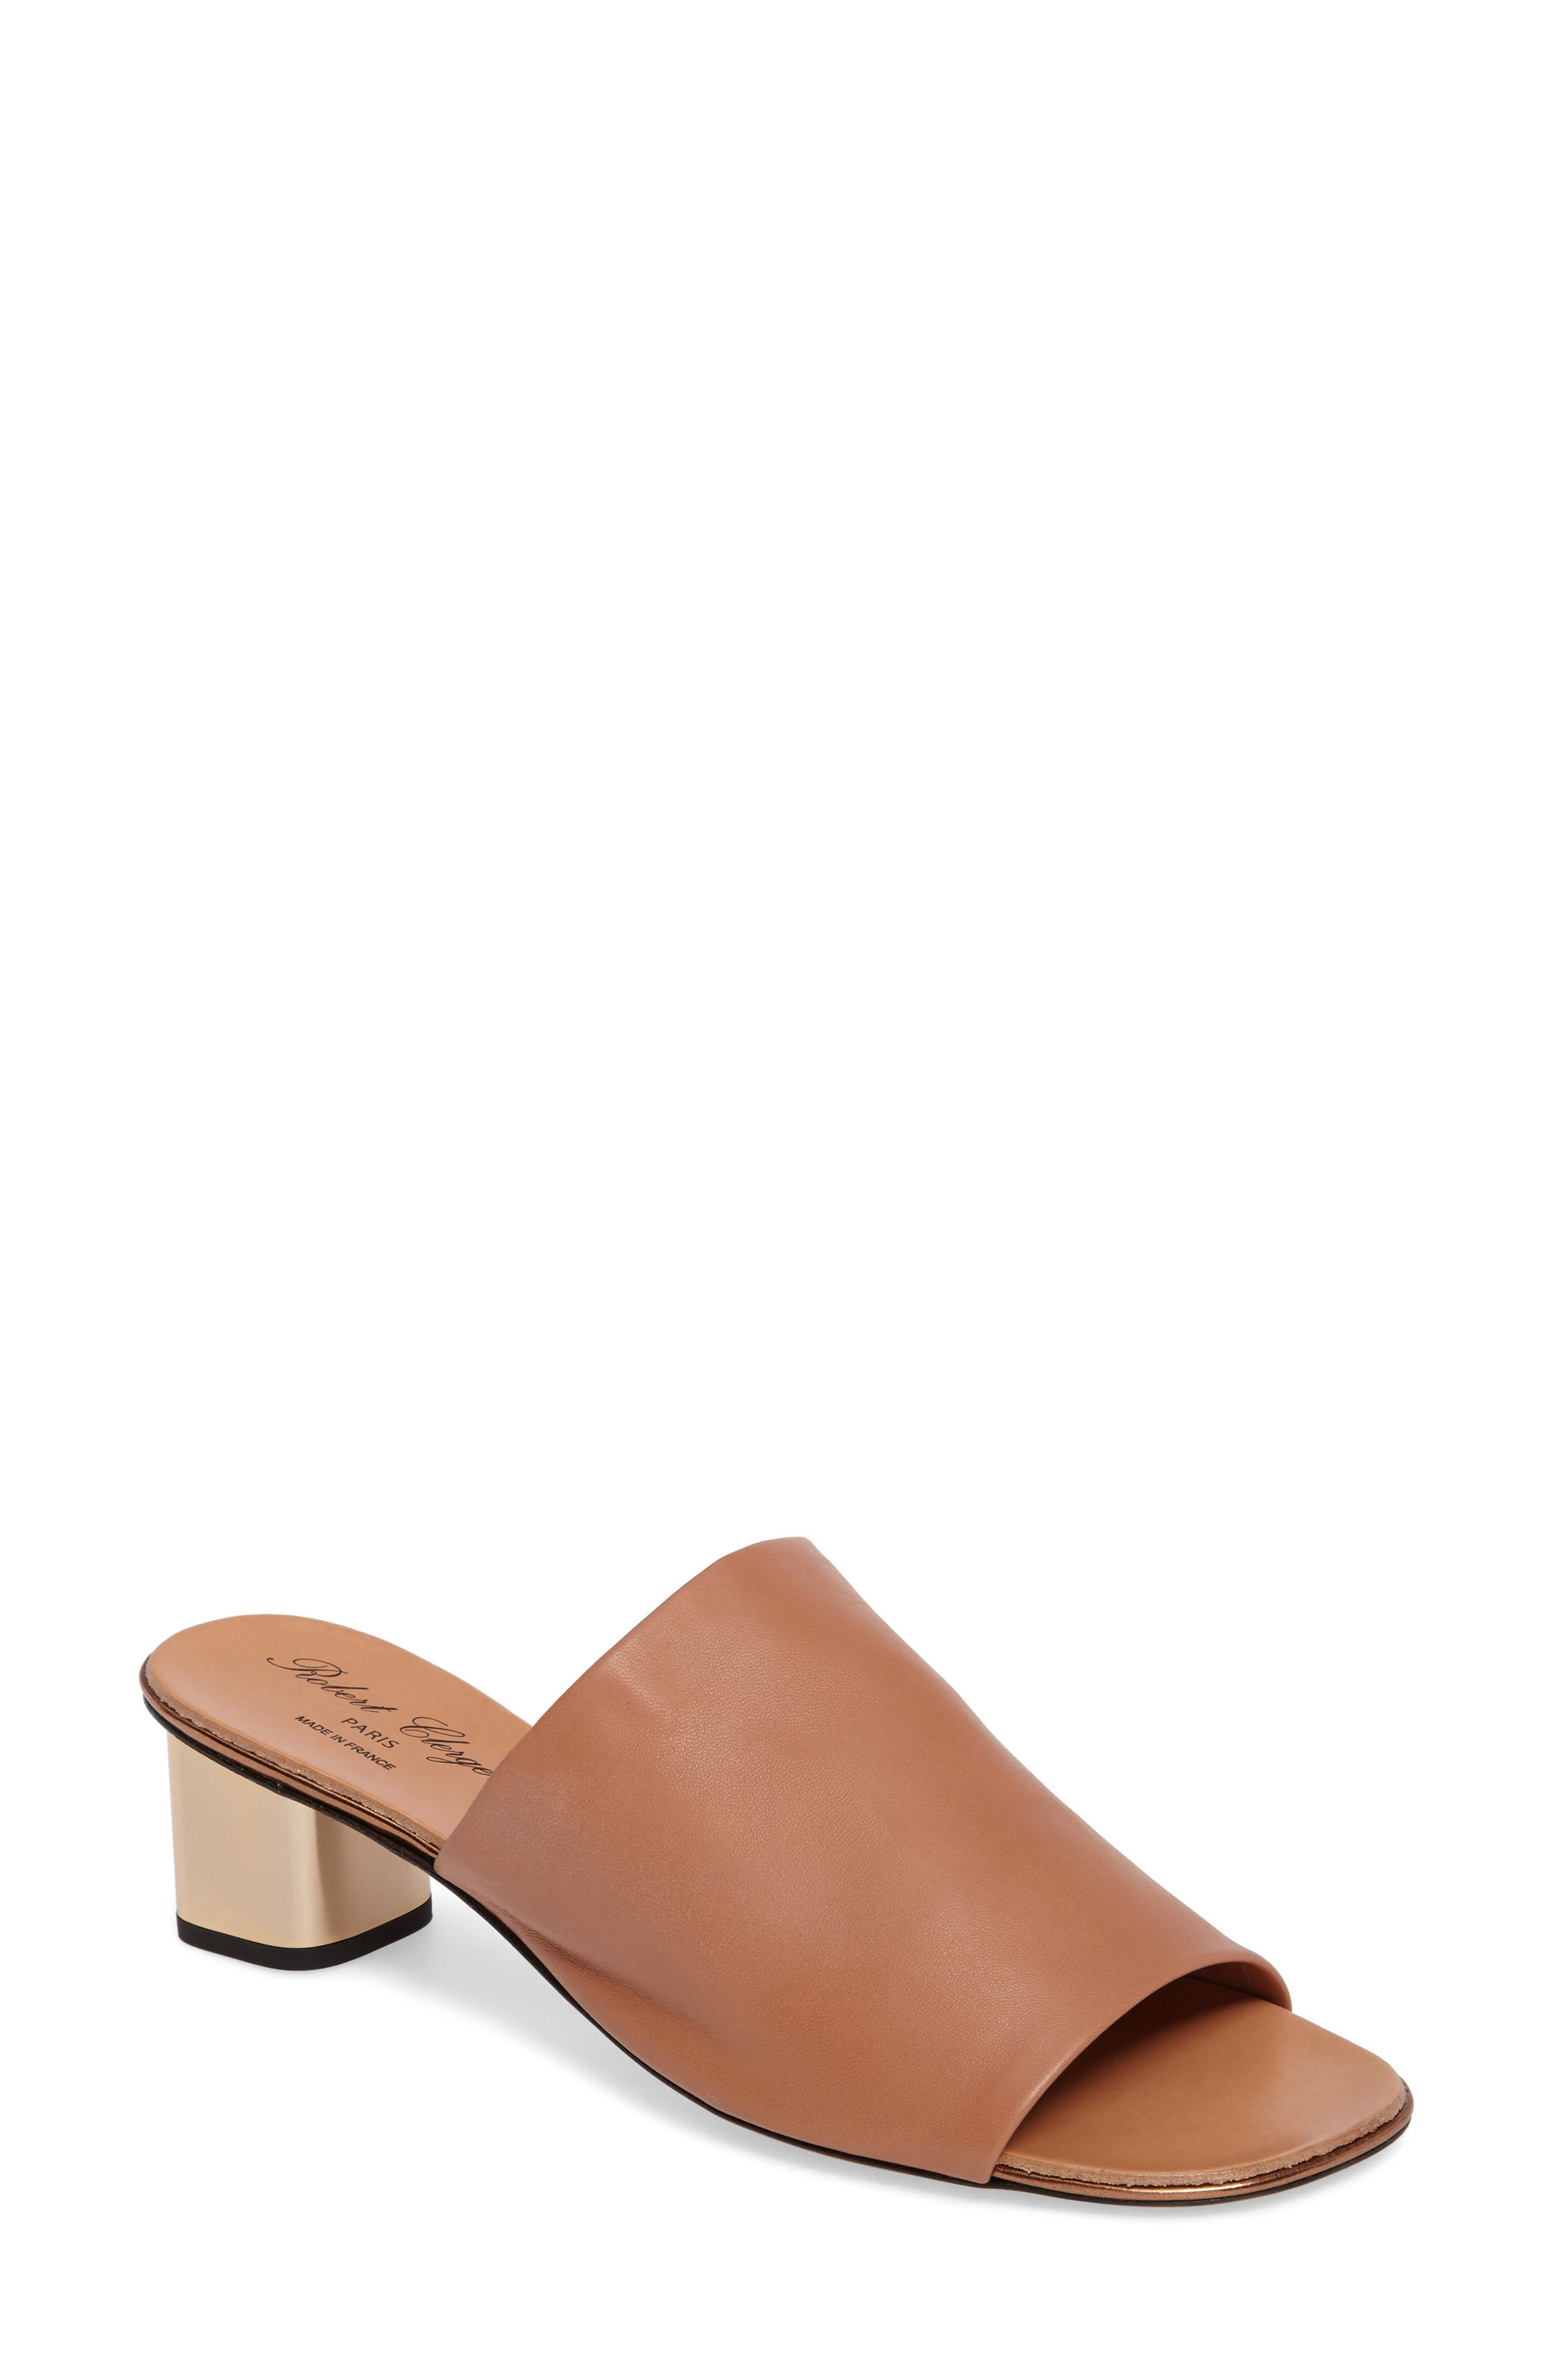 Robert Clergerie Lato Slide Sandal (Women)